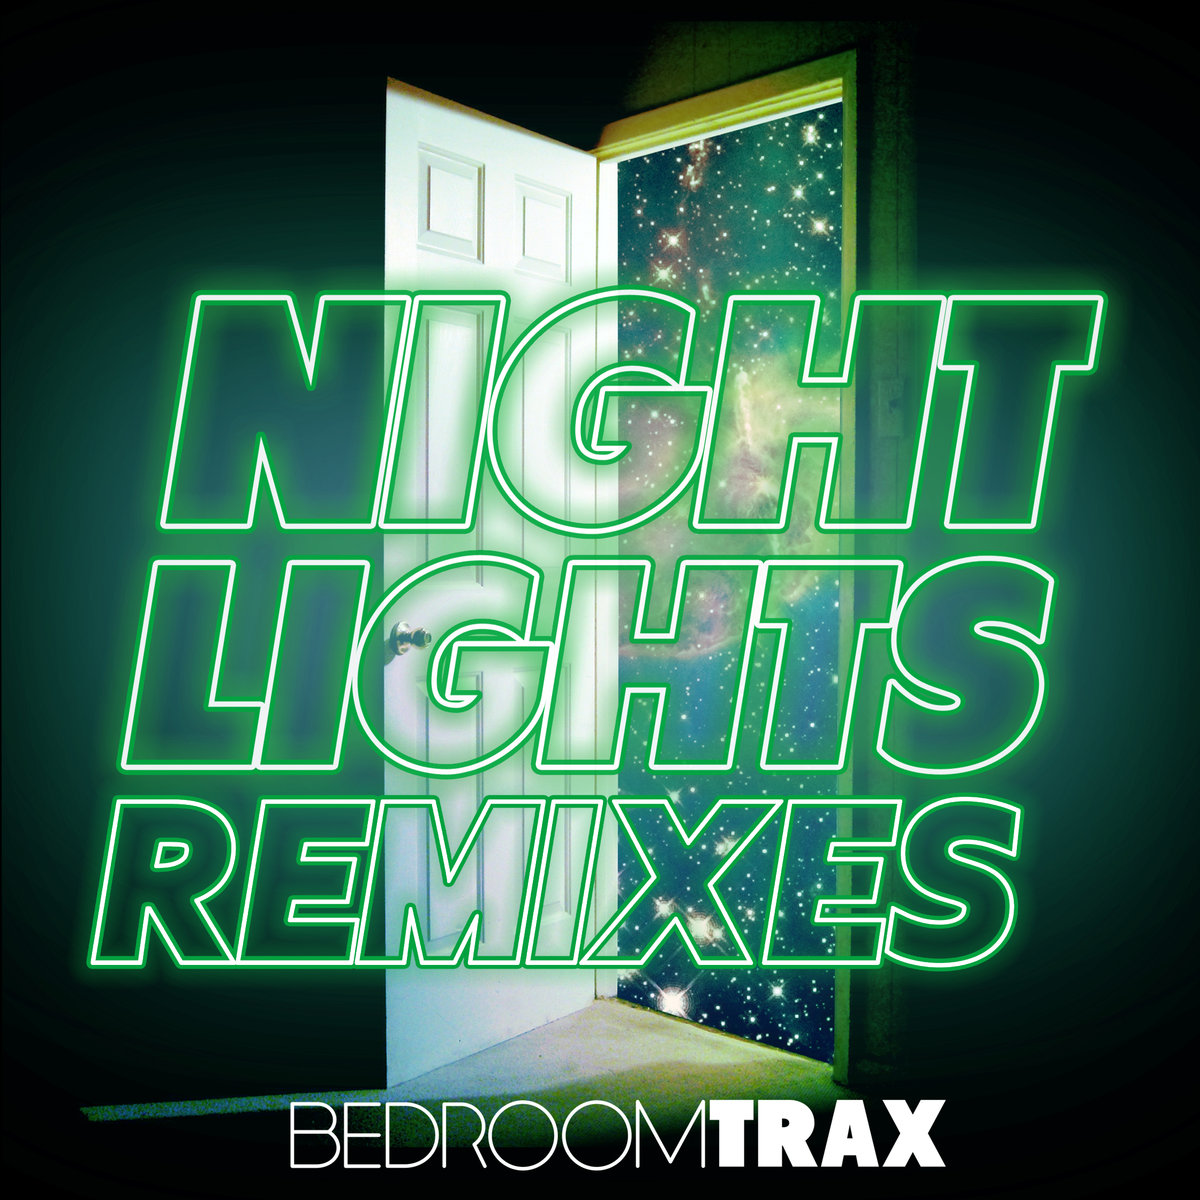 BedroomTrax - Marbles (Octonaut Remix) @ 'Night Lights Remixes' album (electronic, dubstep)